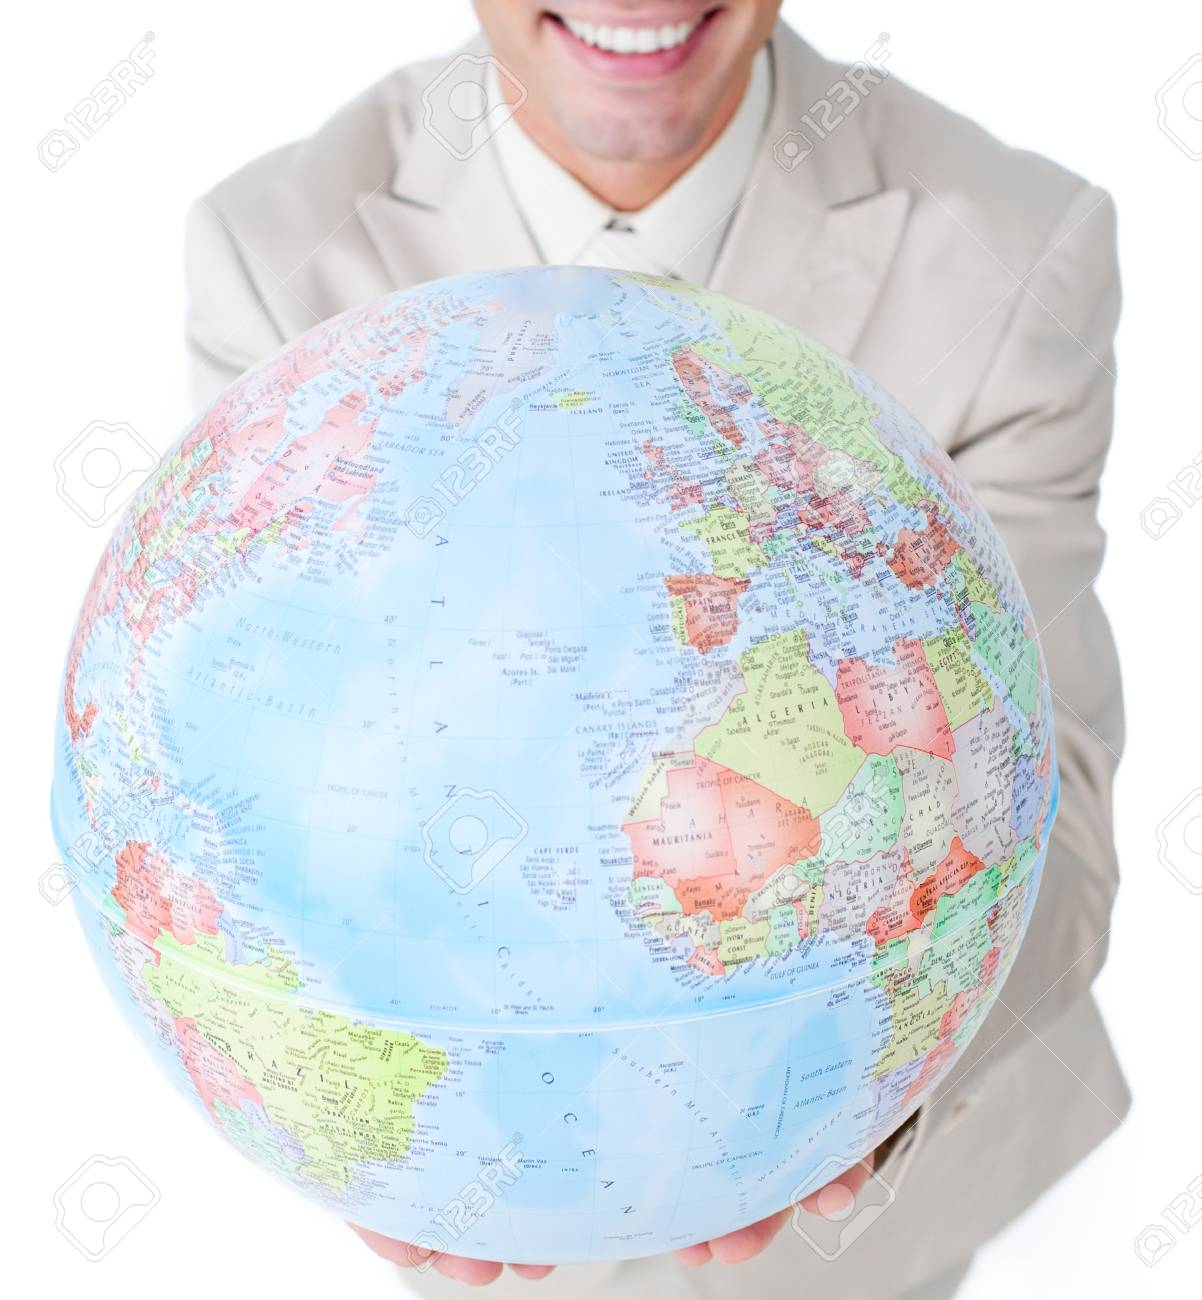 Smiling businessman holding a globe Stock Photo - 10075317